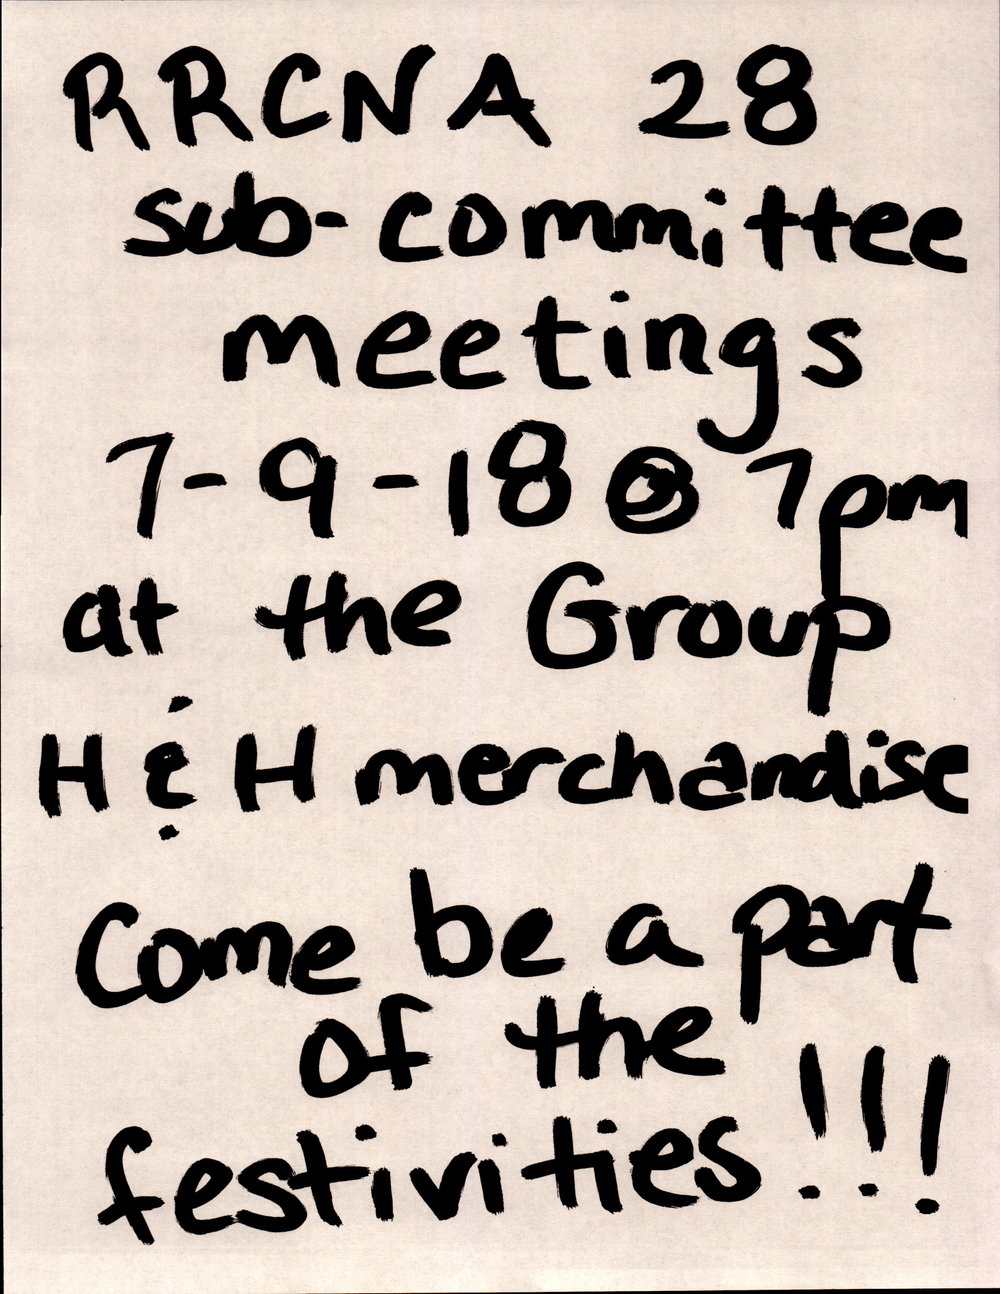 2018-07-09 RRCAN 28 subcommittee meetings.jpg